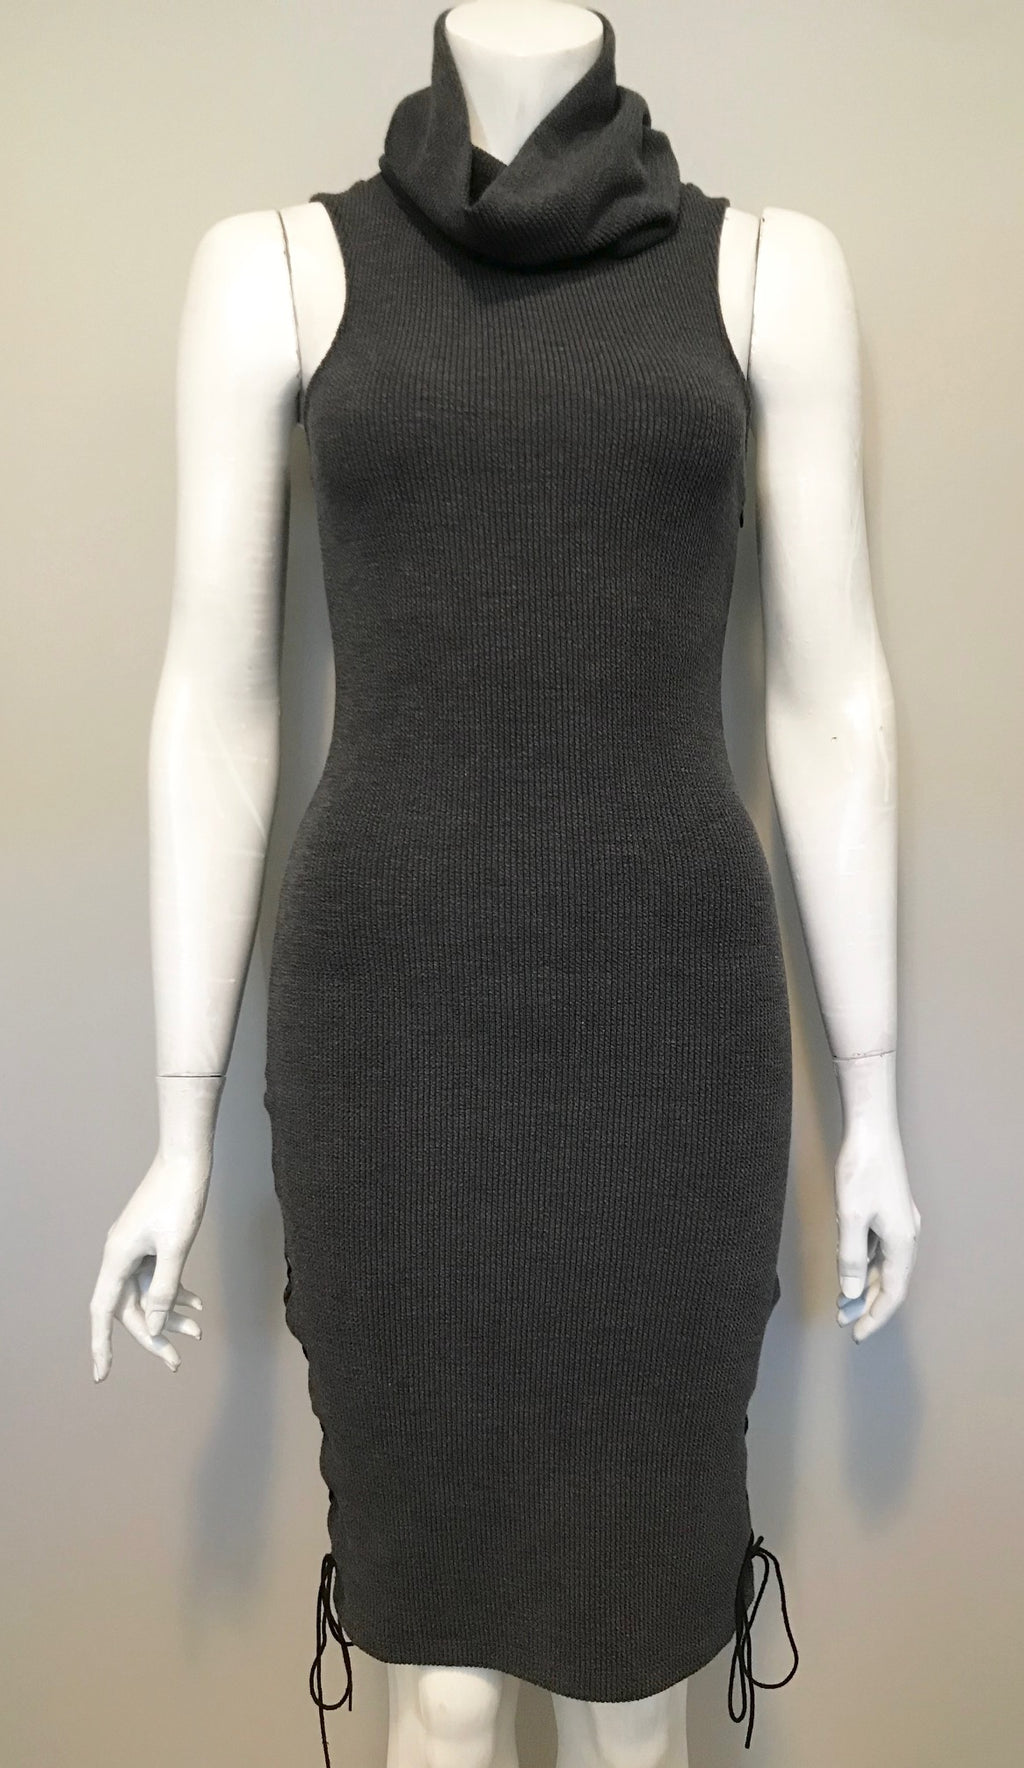 Anglr Grey Turtle Neck Sweater Dress Size S